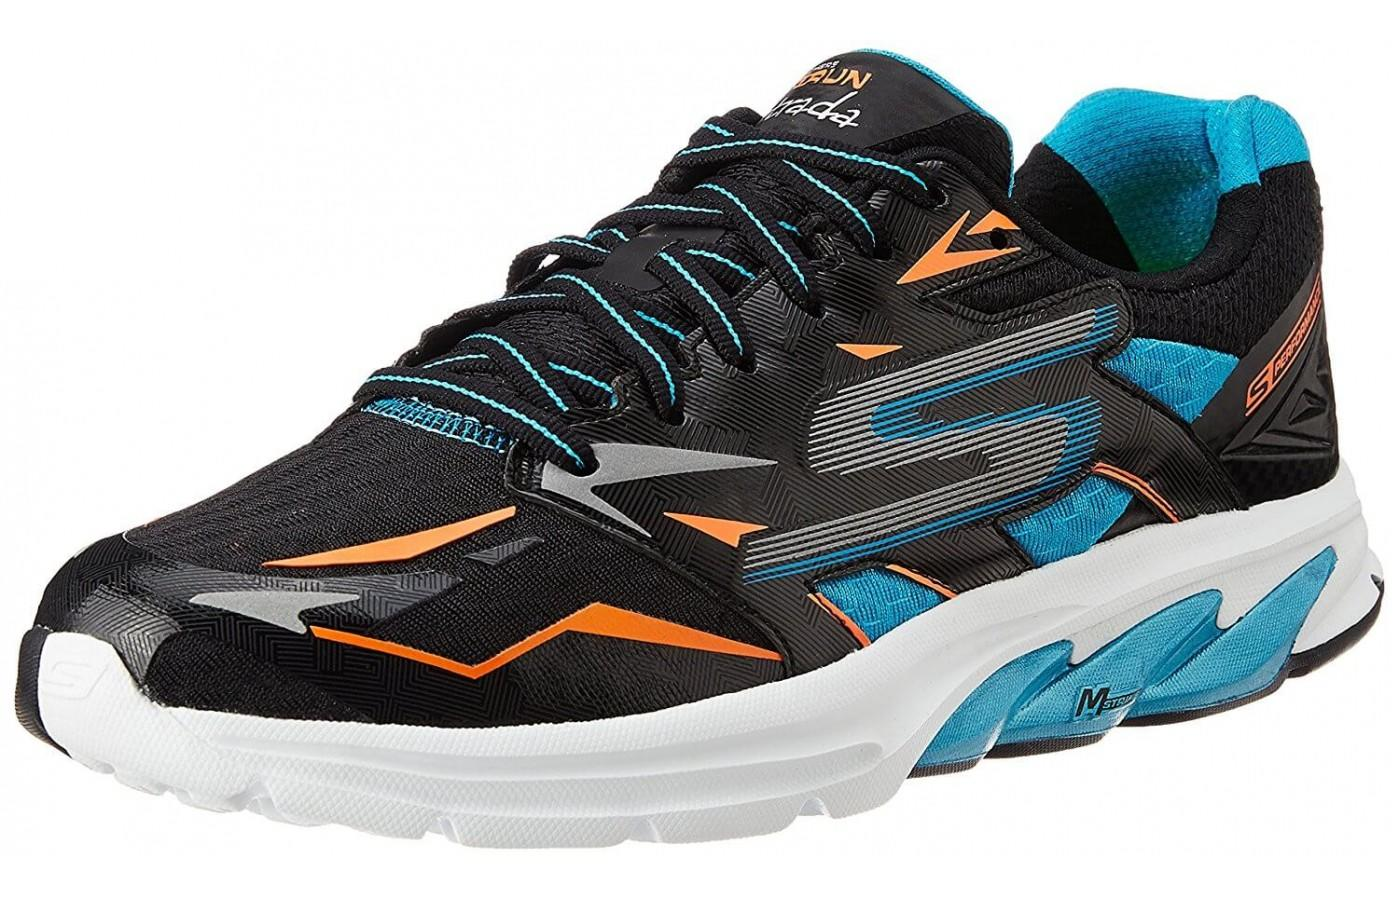 the Skechers GOrun Strada shown from the front/side